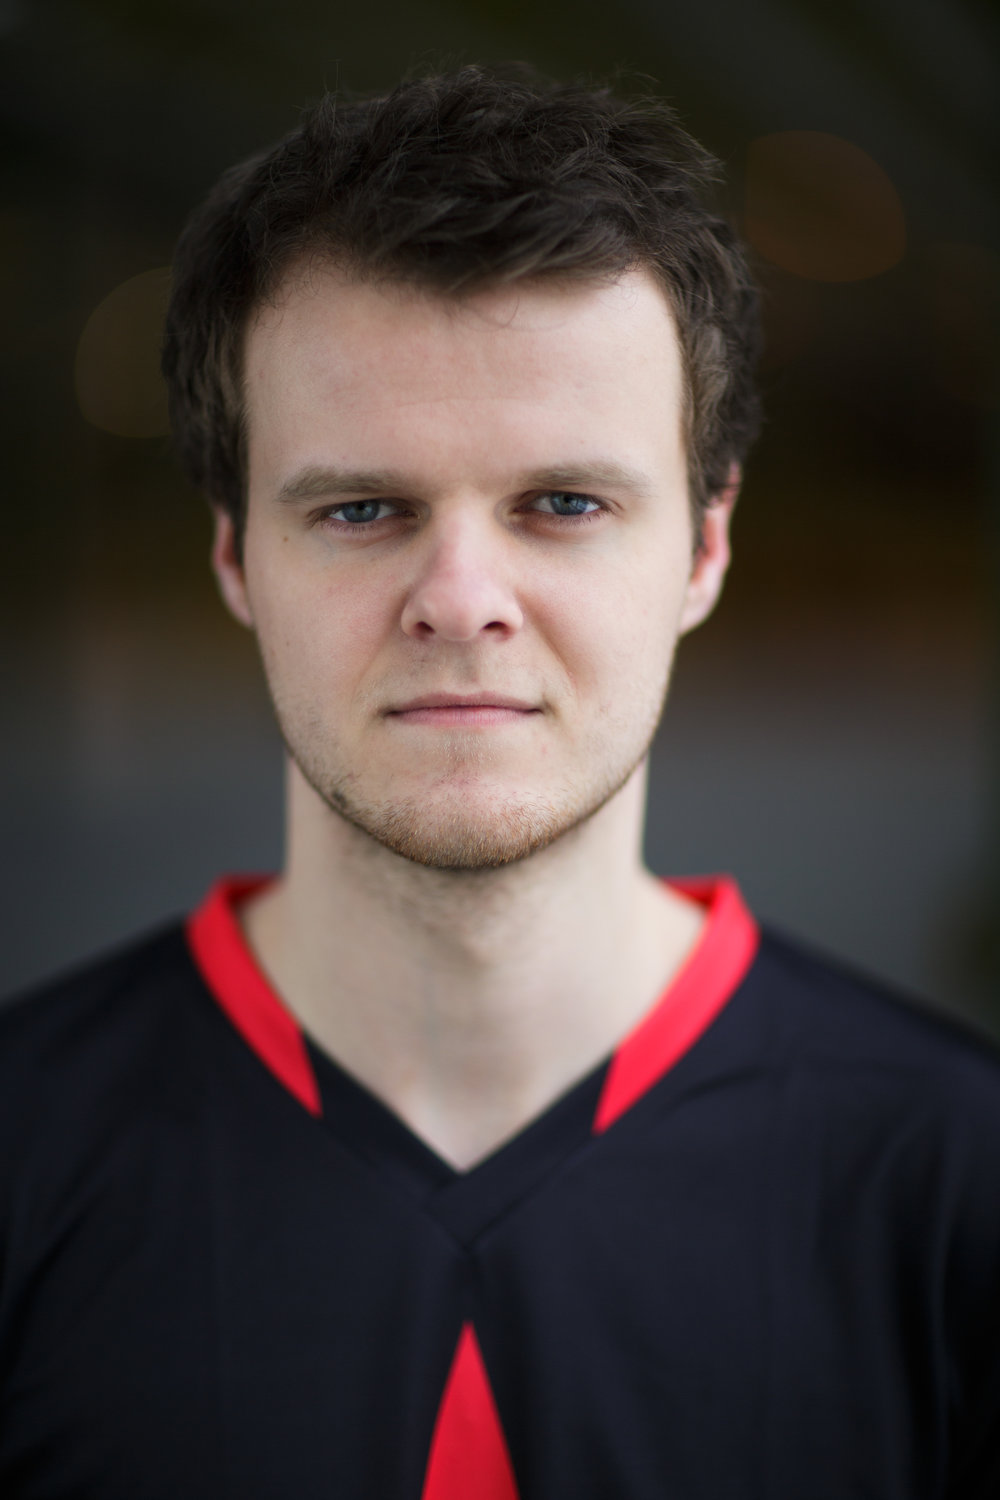 Andreas 'Xyp9x' Højsleth (vertical) - download